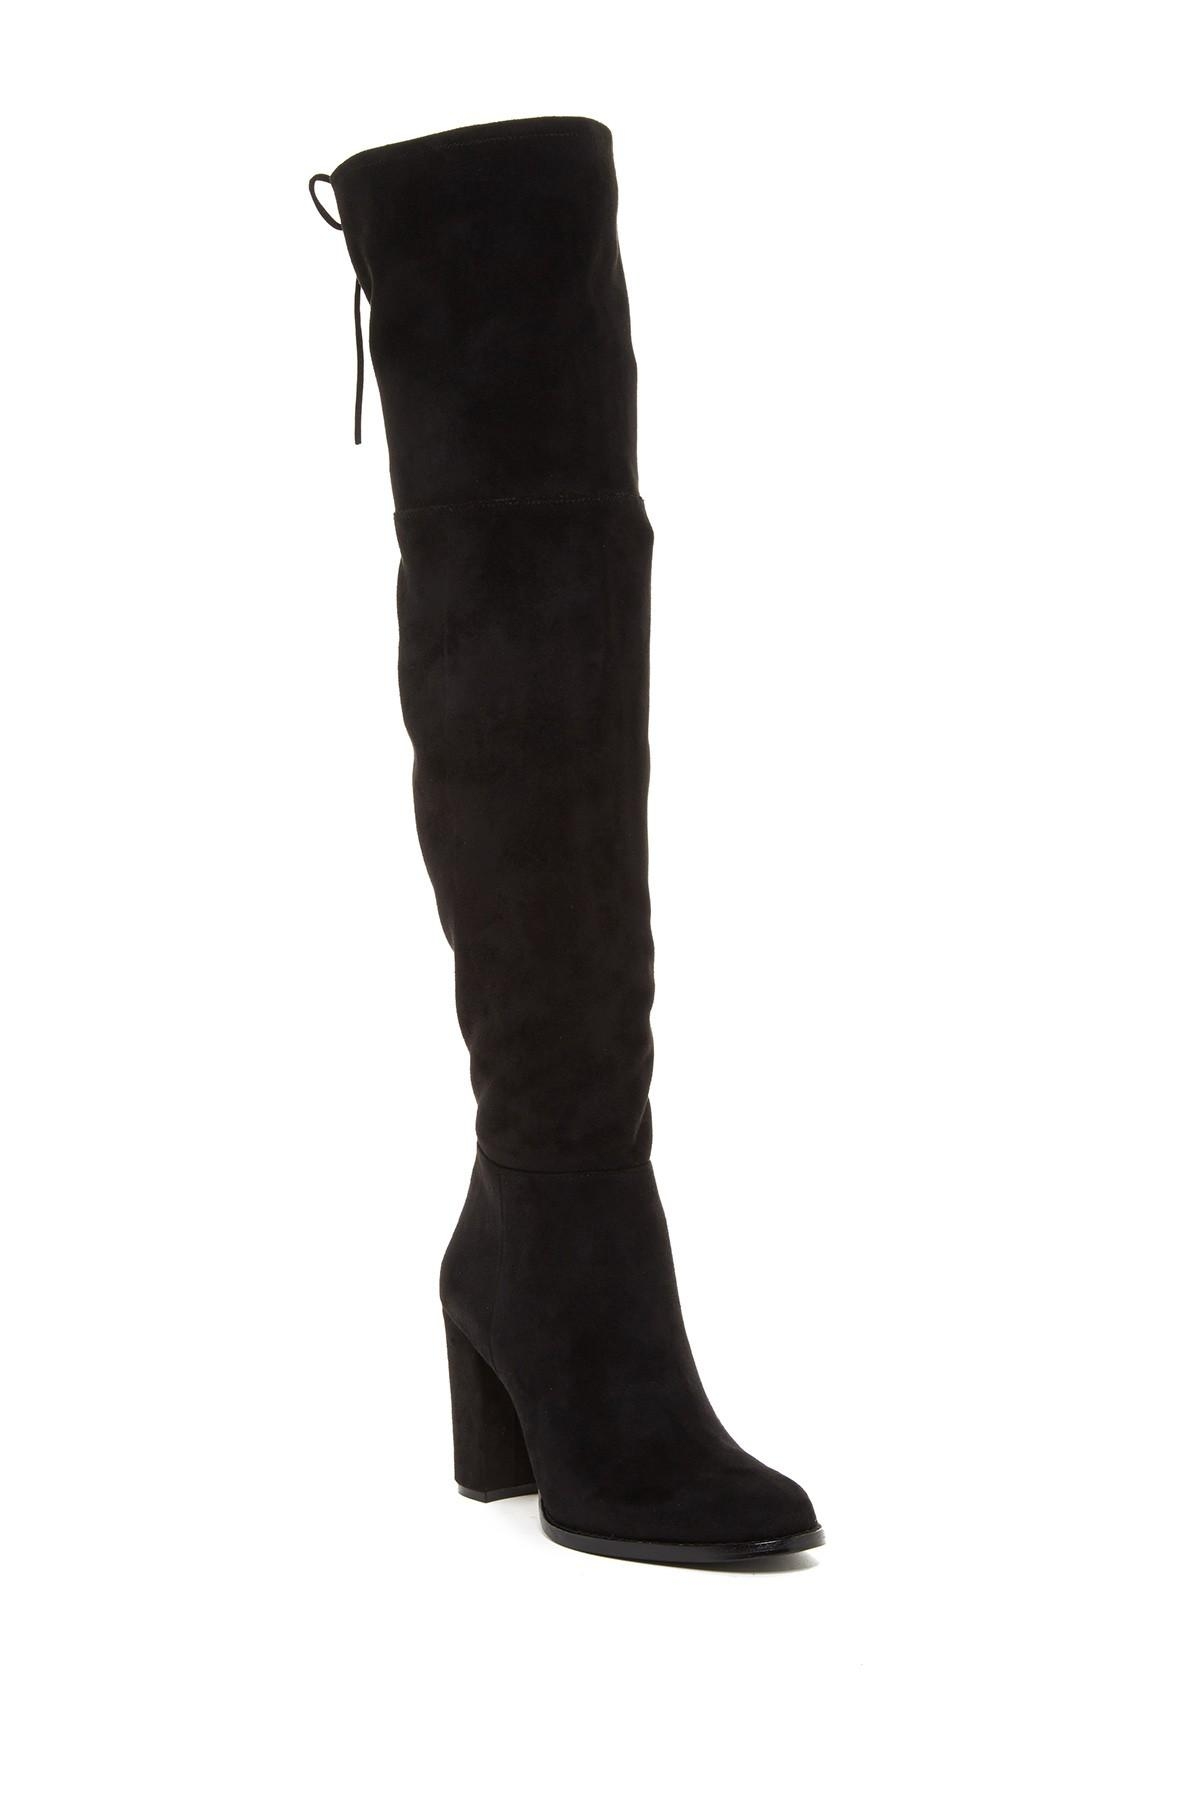 Lyst Vince Camuto Grady Over The Knee Boot In Black